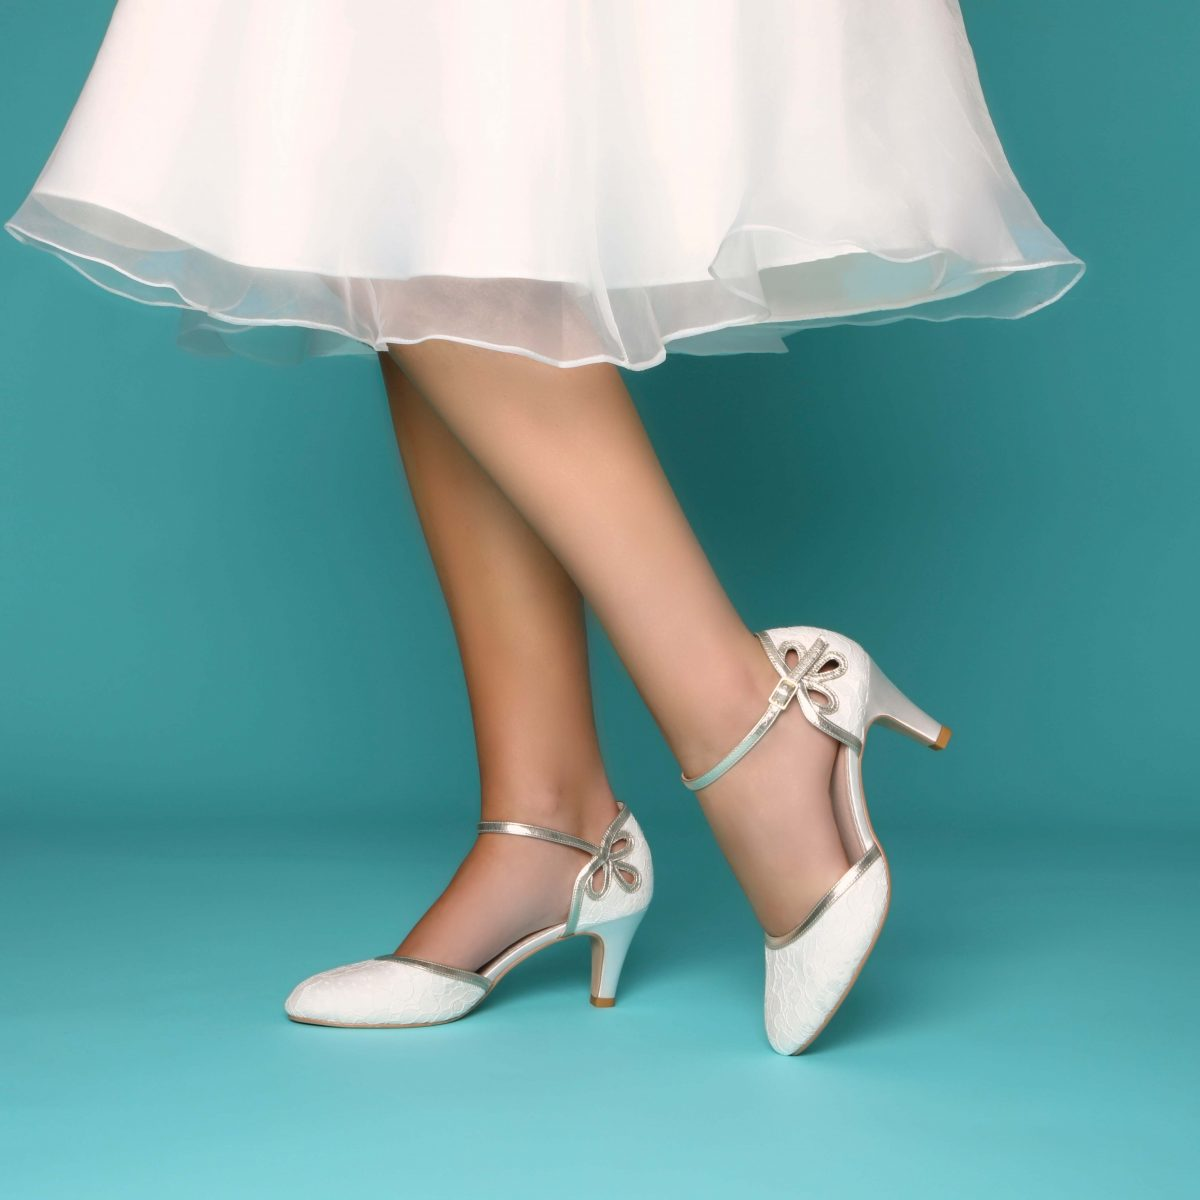 Perfect Bridal Nina Shoes - Ivory satin / Silver shimmer 1